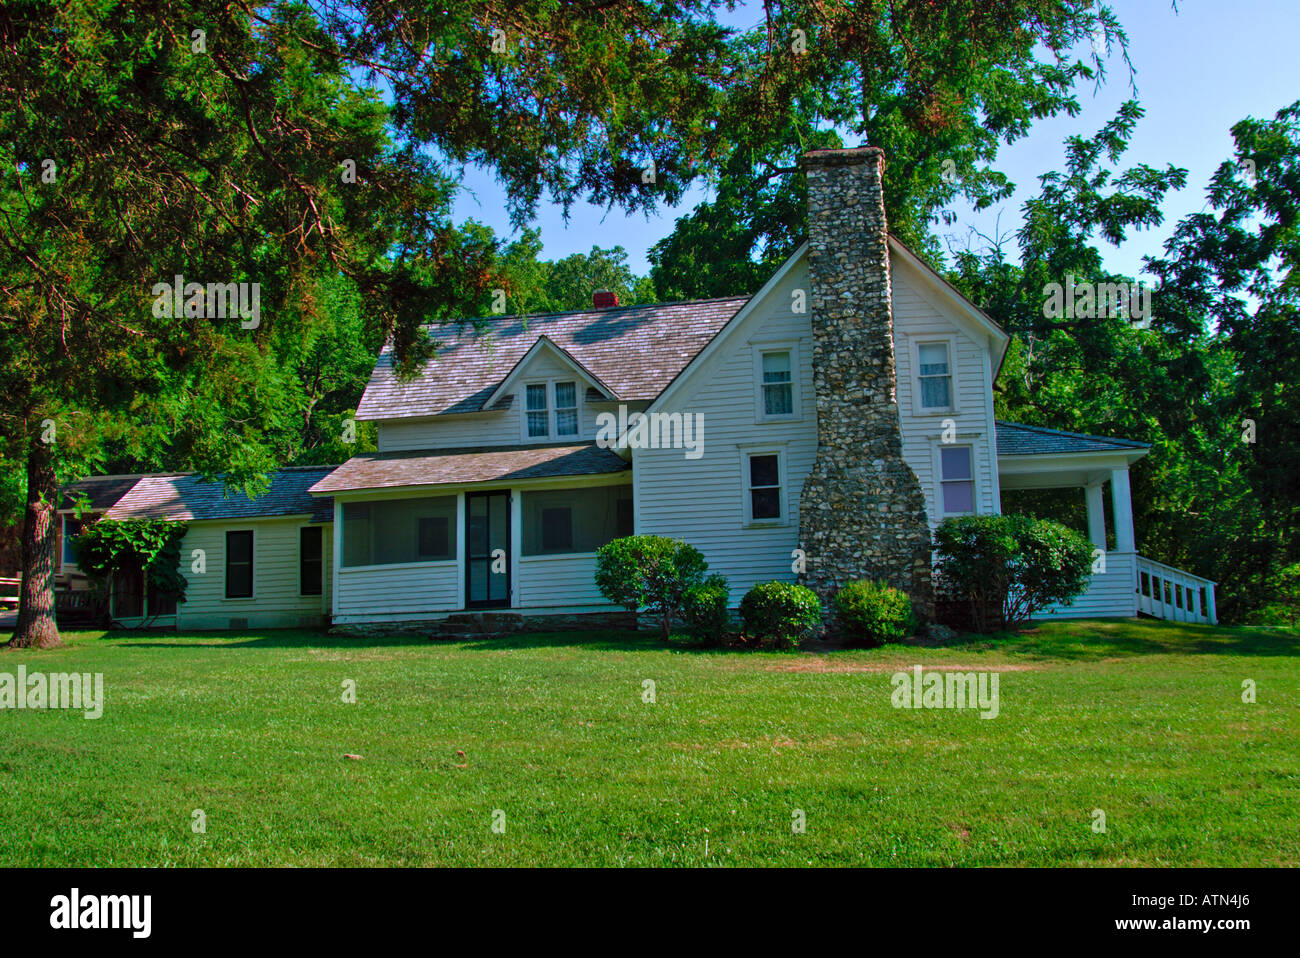 Wilder Home - Stock Image